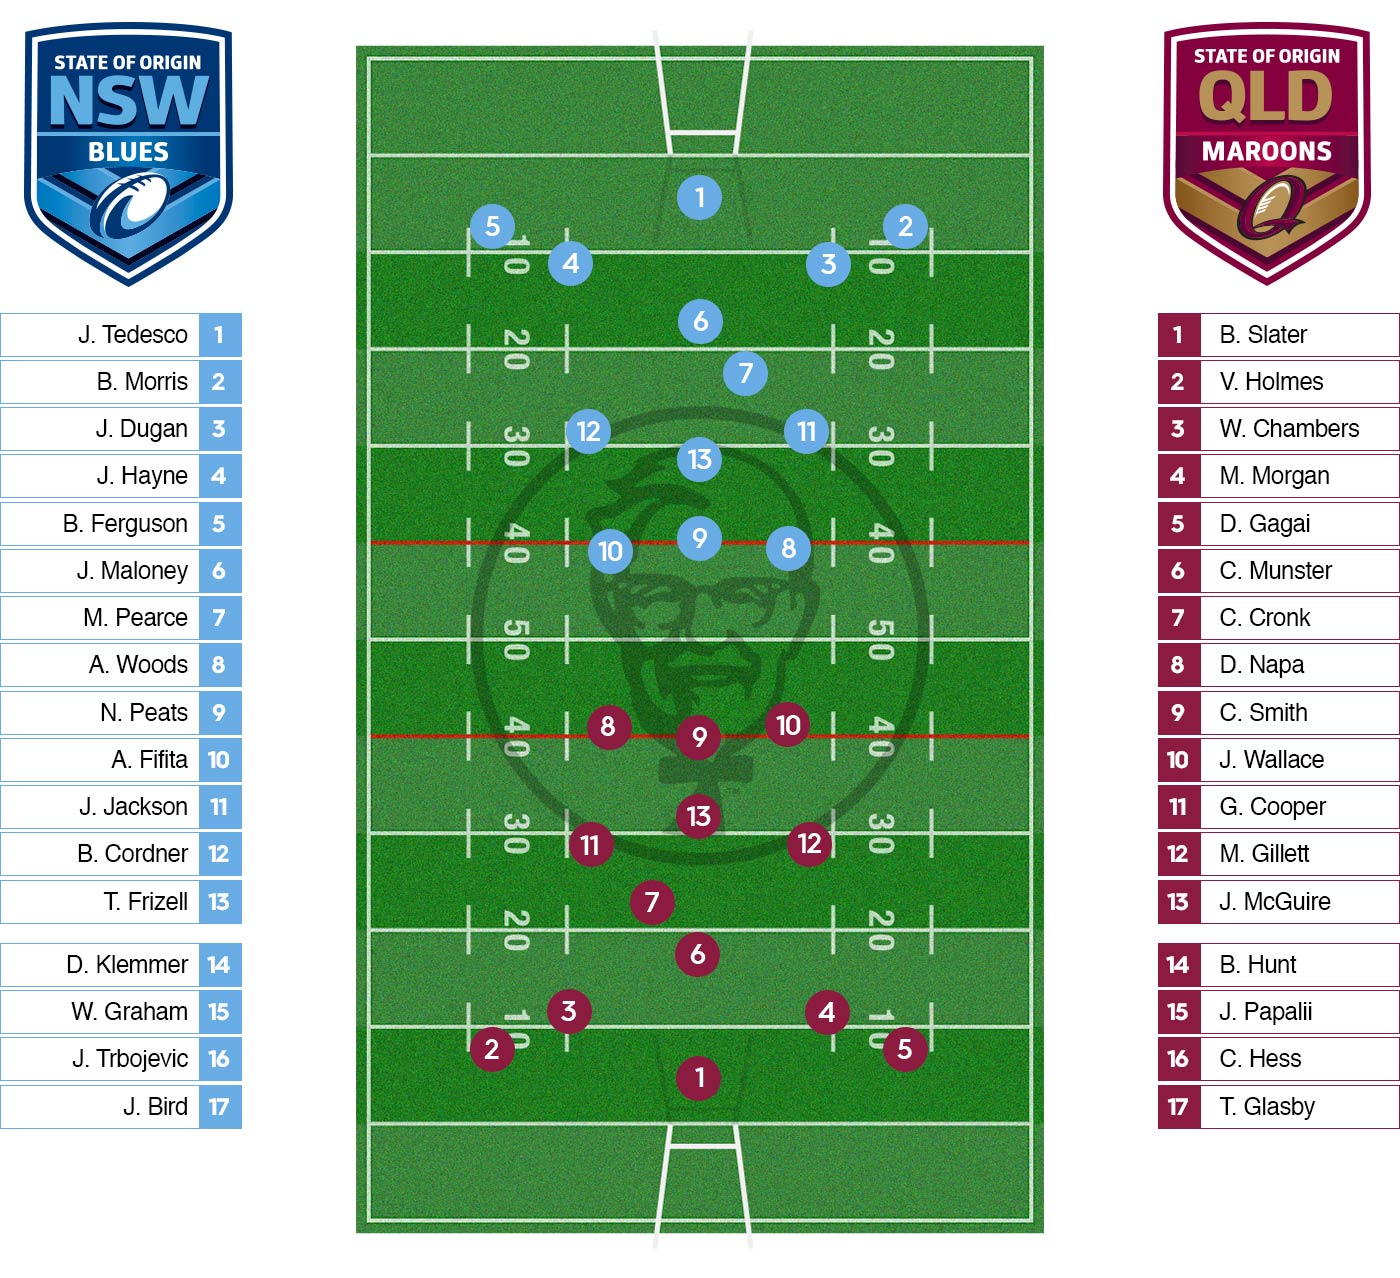 NSW & QLD Teams